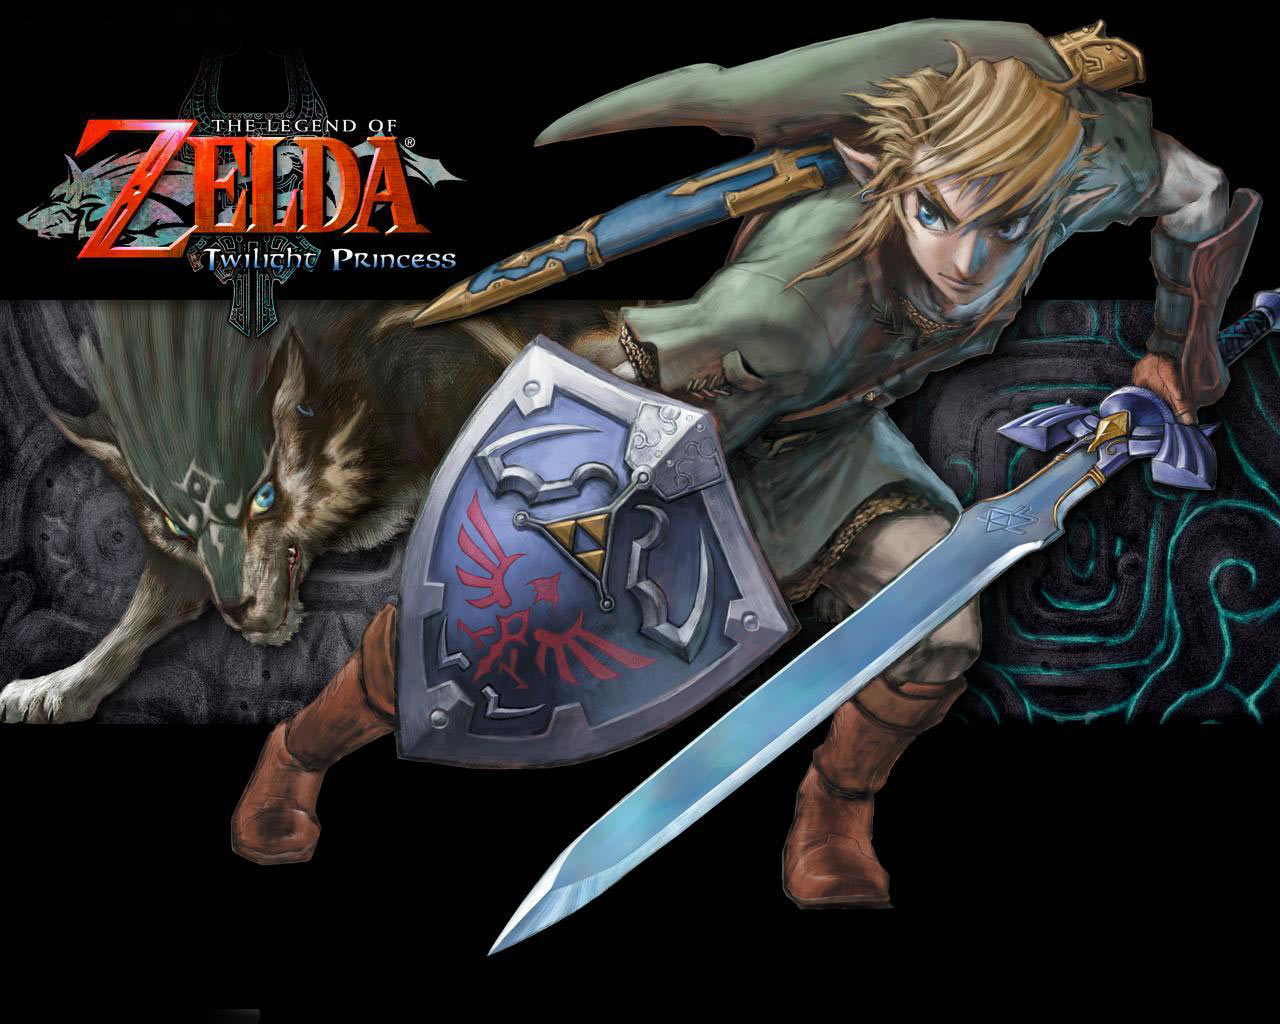 The Legend of Zelda Twilight Princess – Wii